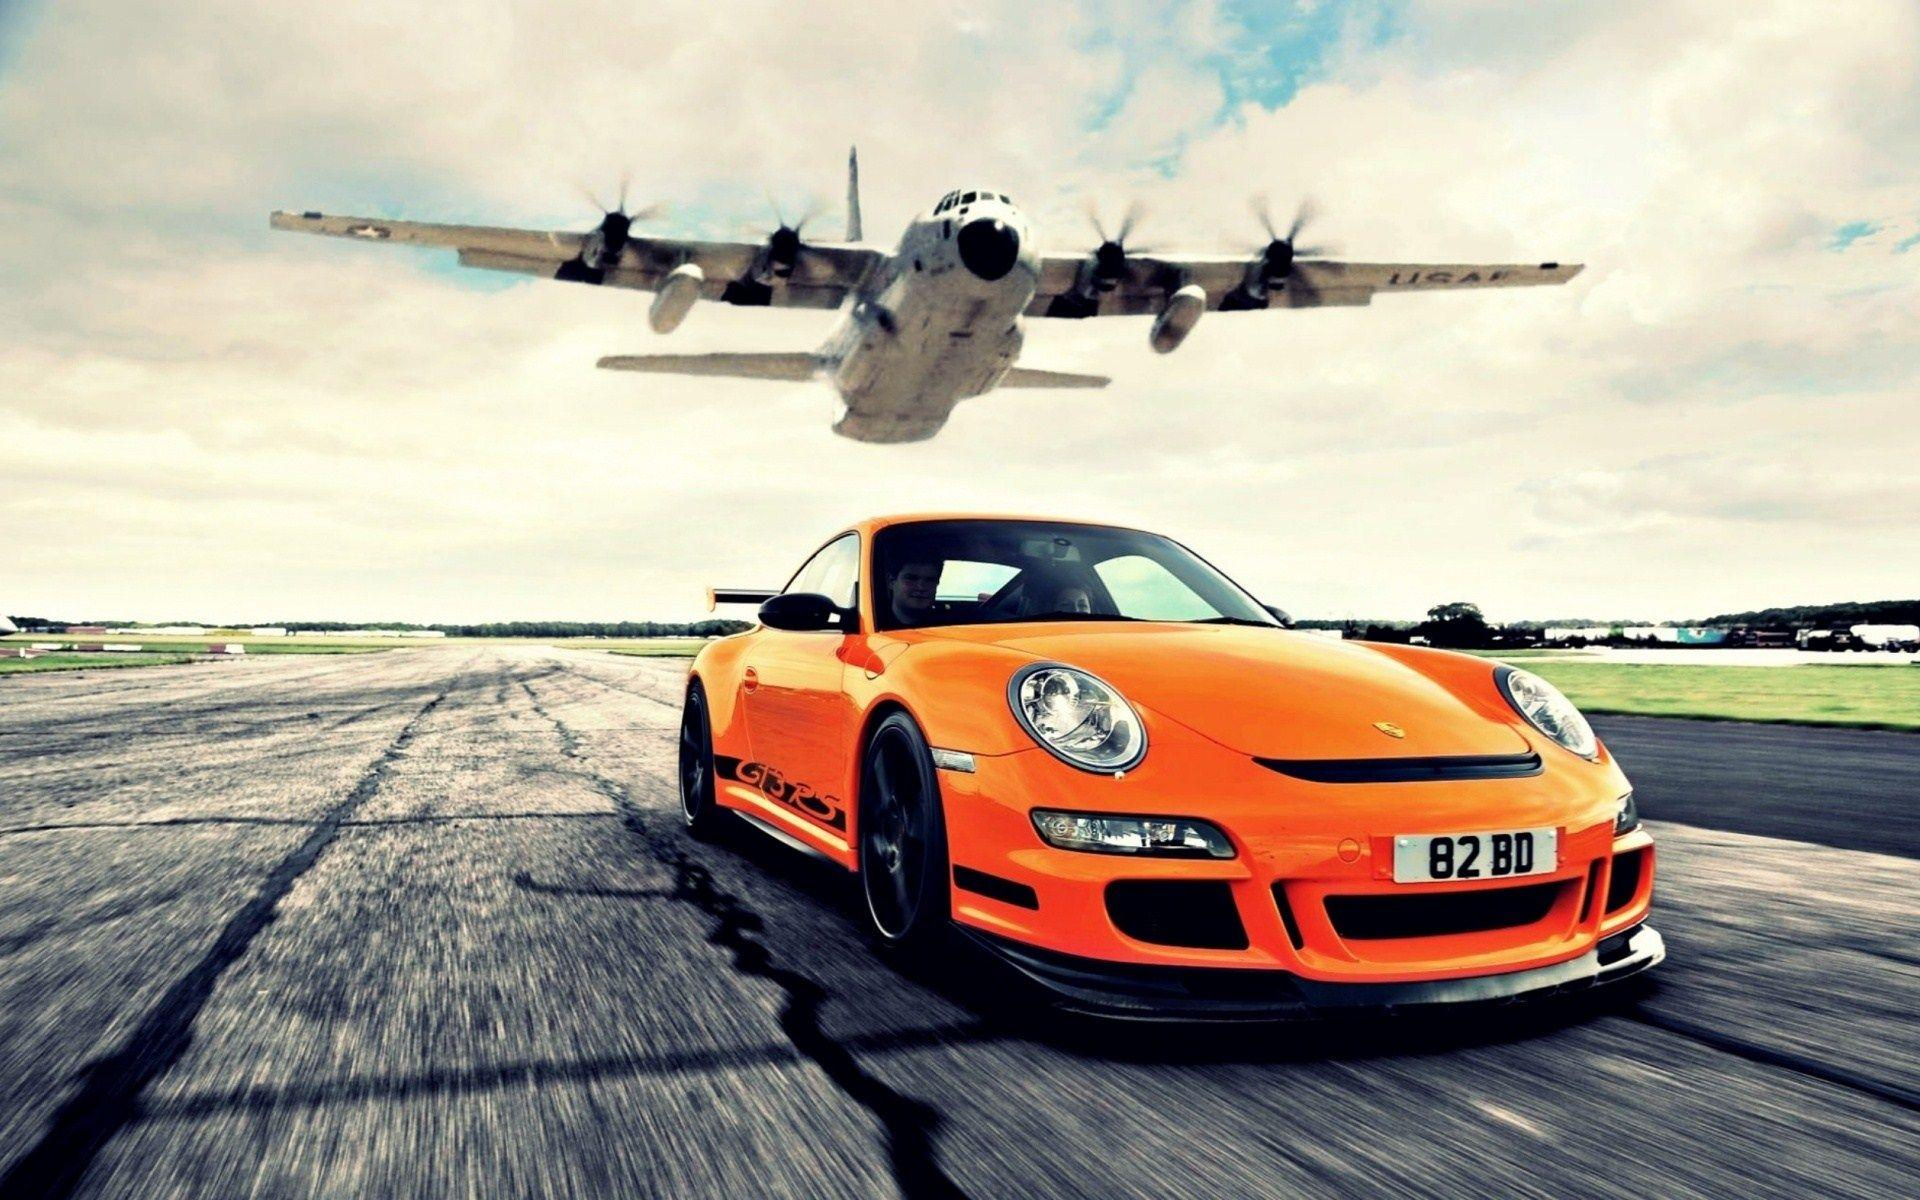 Porsche Wallpaper Image · Porsche Wallpapers | Best Desktop ...